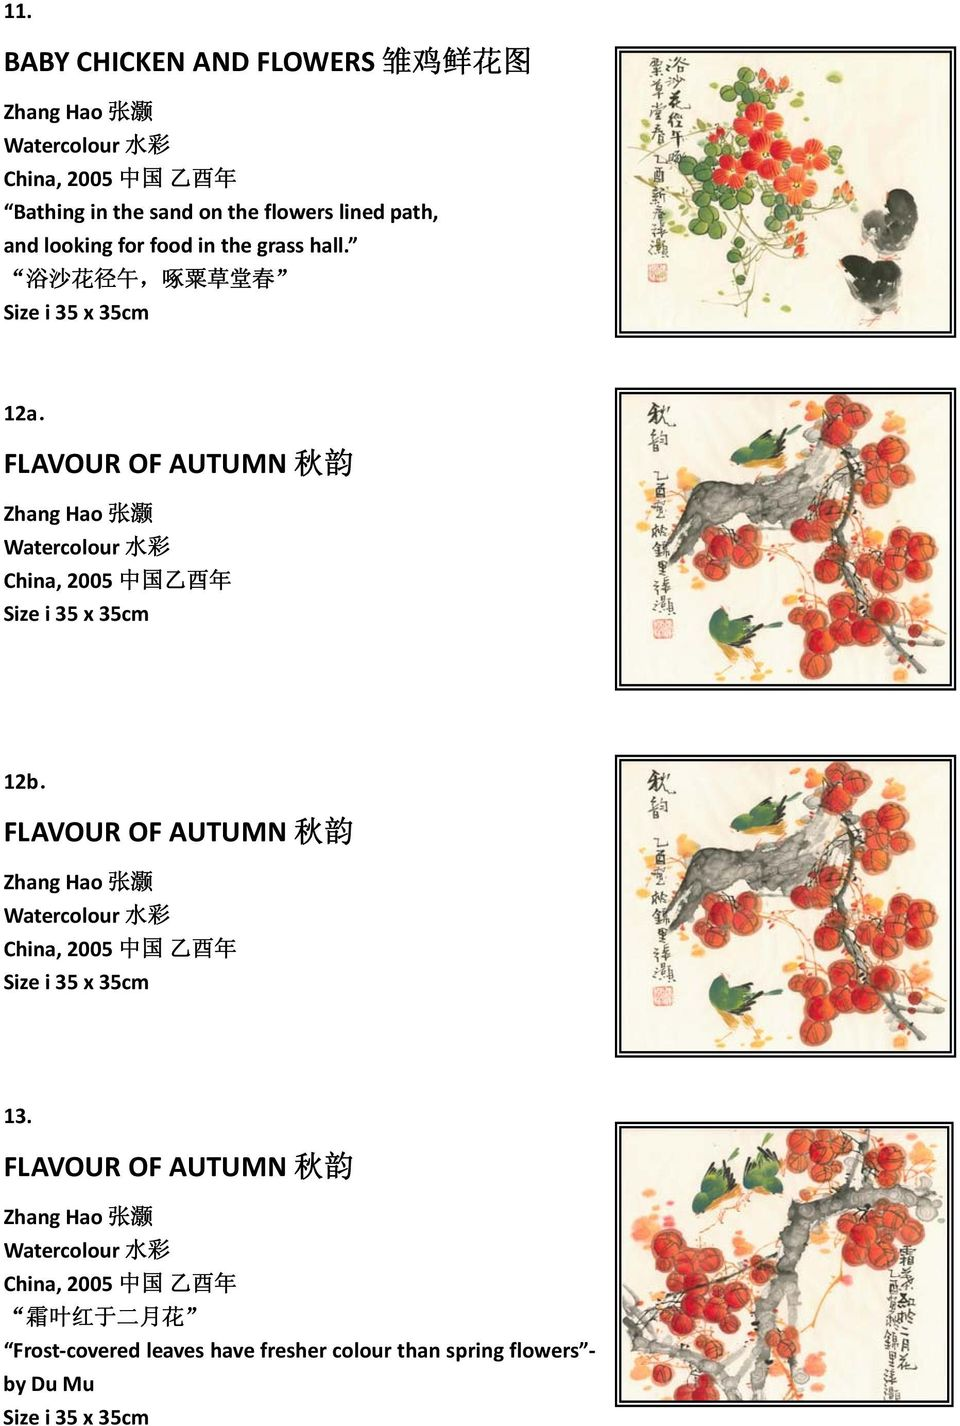 FLAVOUR OF AUTUMN 秋 韵 12b. FLAVOUR OF AUTUMN 秋 韵 13.